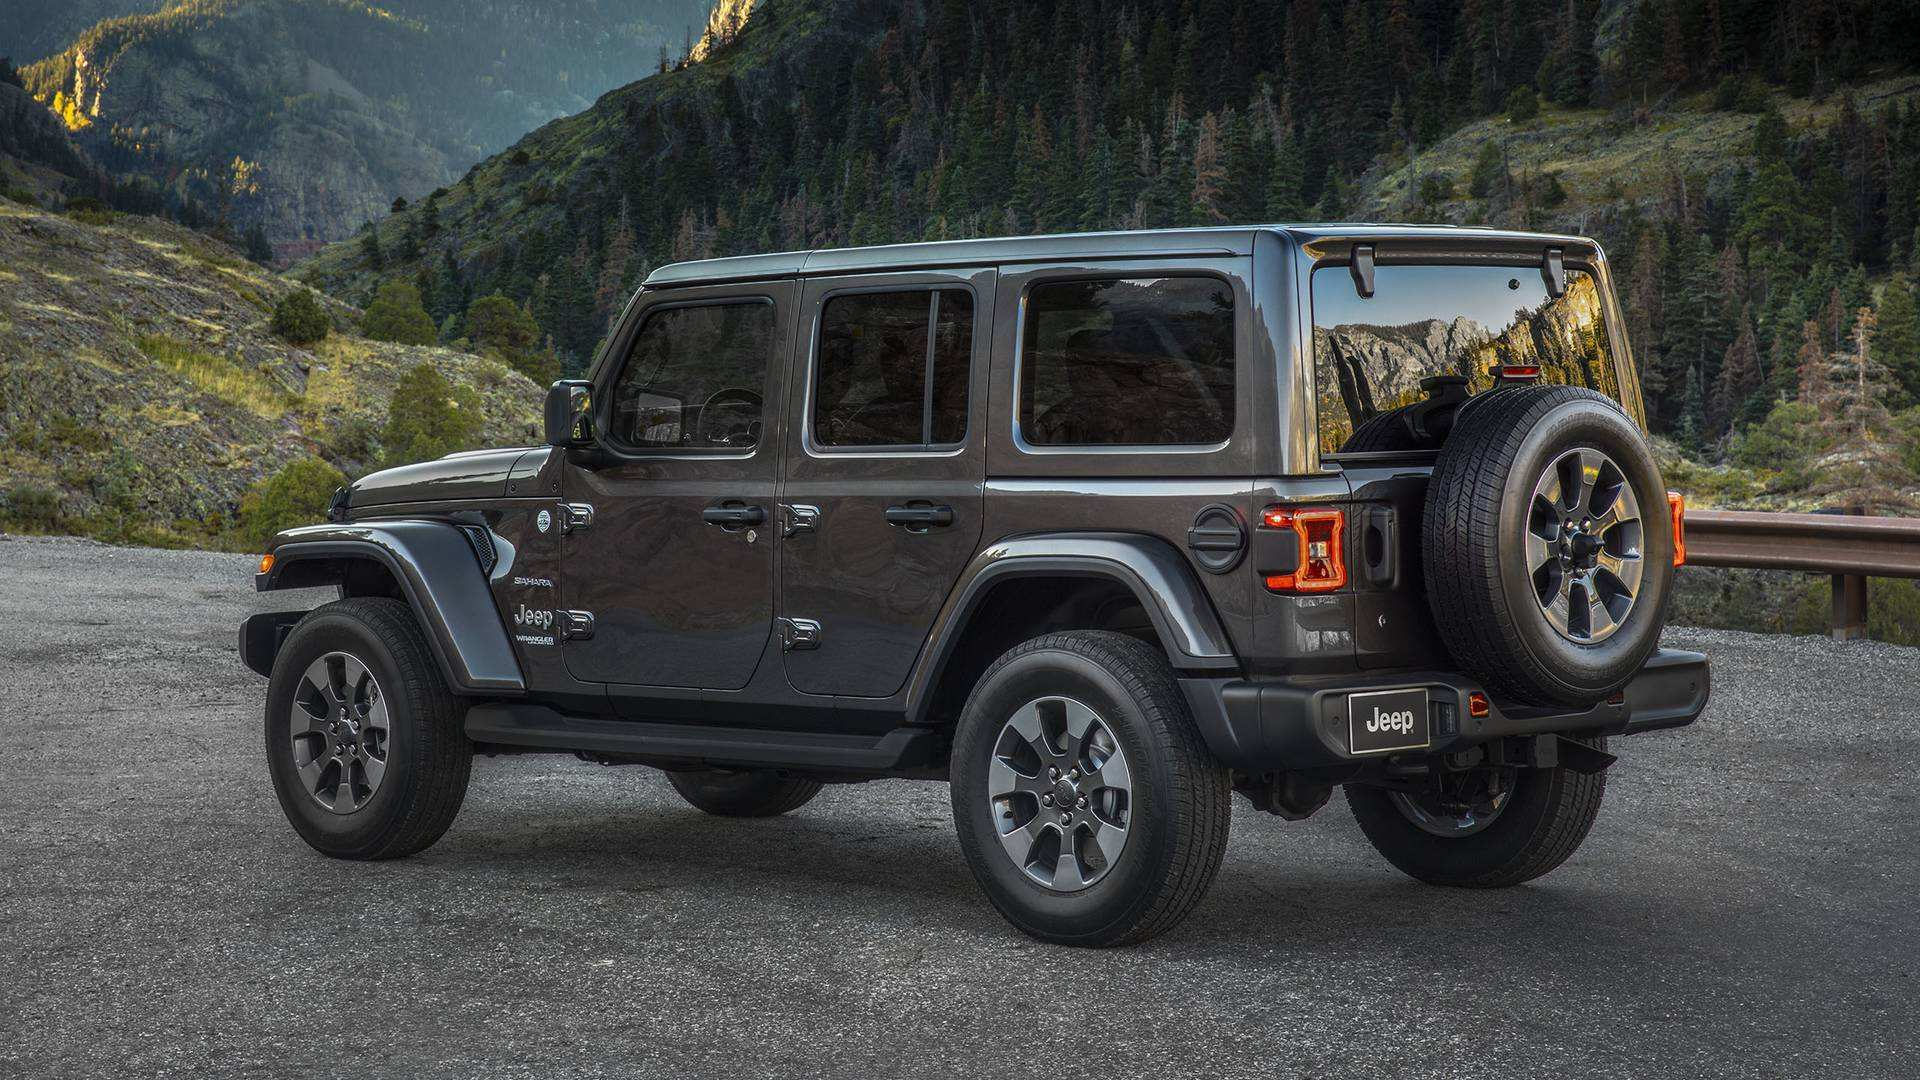 66 Great 2019 Jeep Wrangler Diesel Review Reviews with 2019 Jeep Wrangler Diesel Review